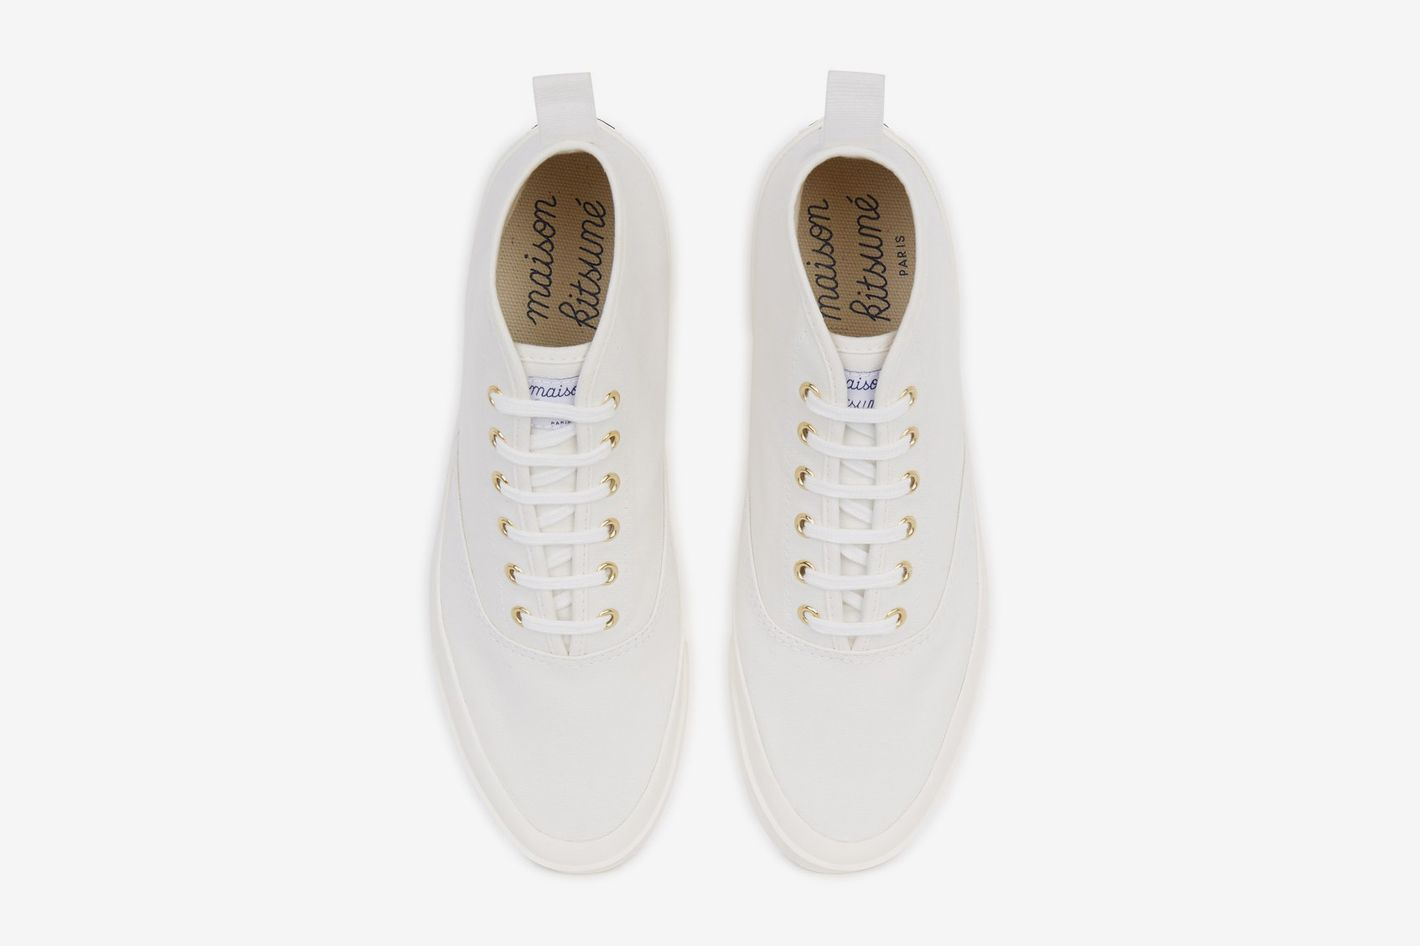 Maison Kitsuné High Top Sneakers